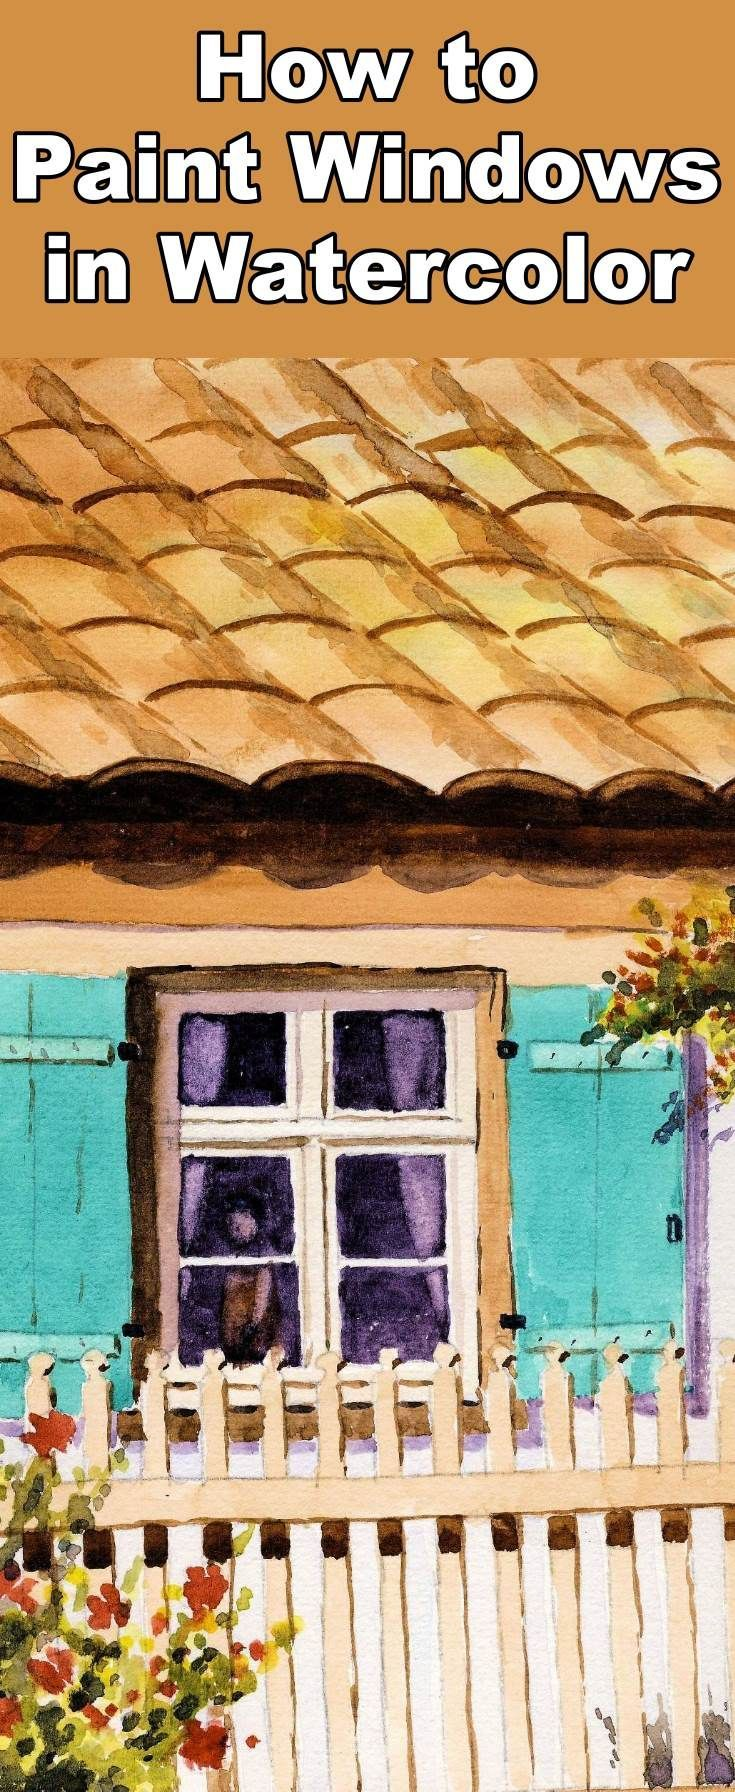 Learn how to paint glass and windows with this watercolor painting tutorial